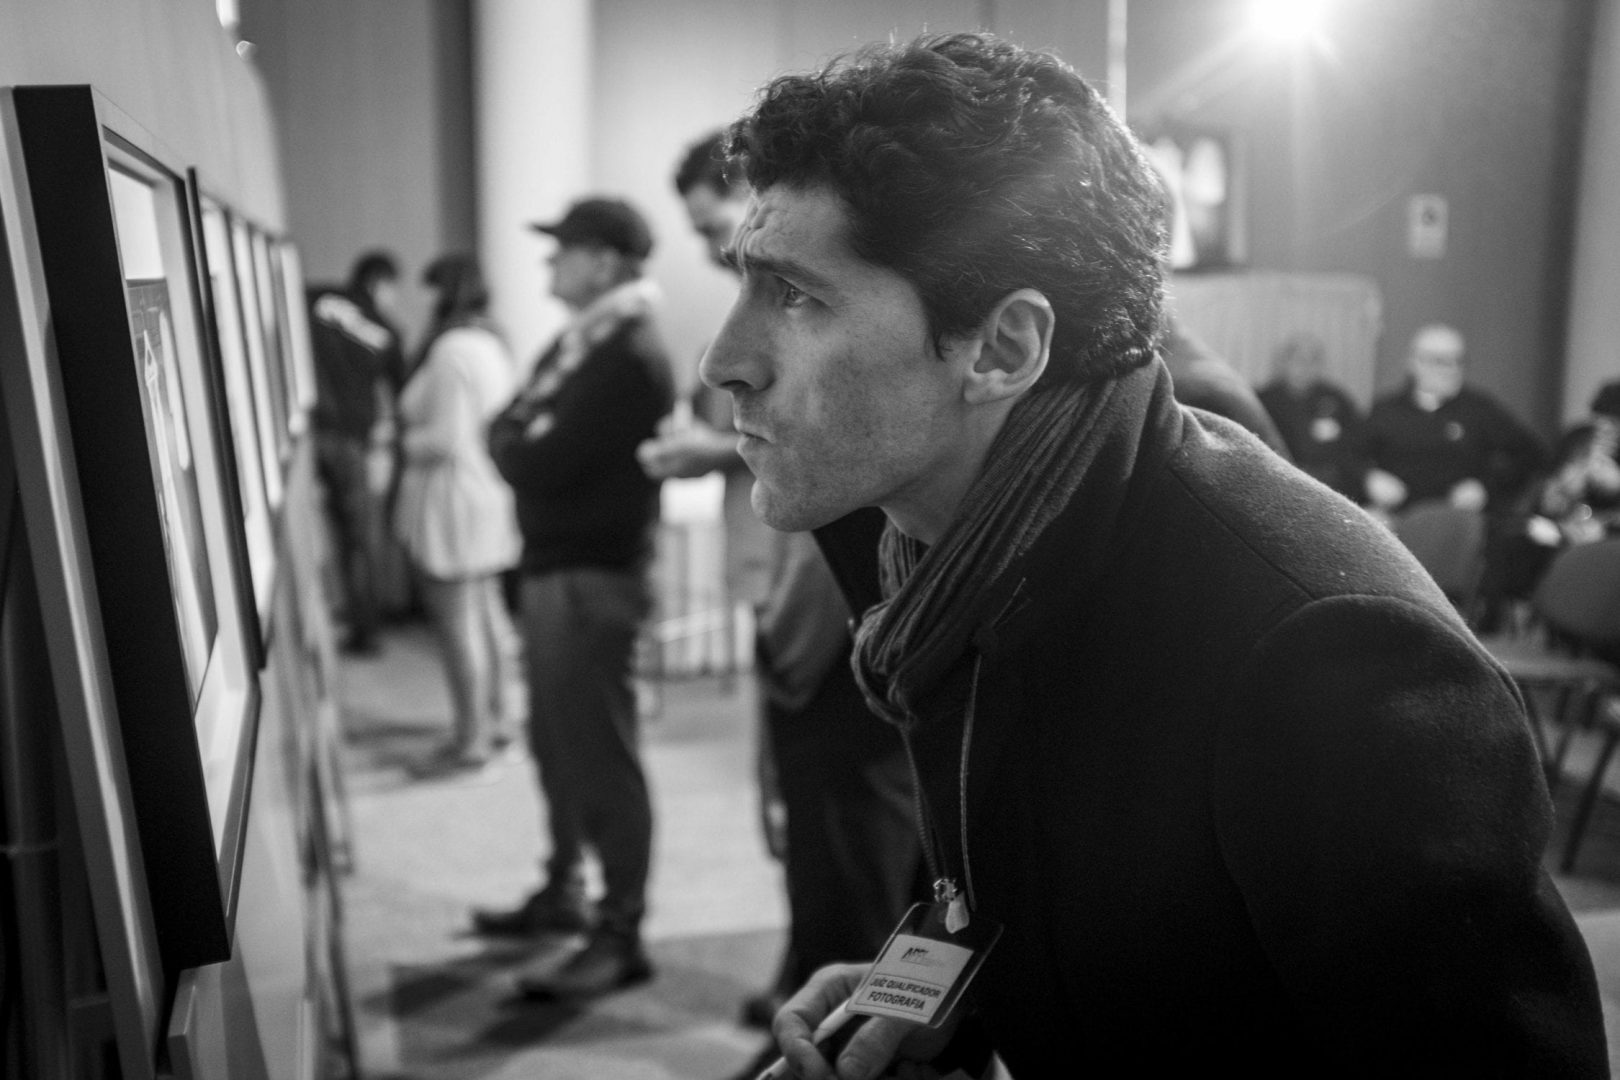 Jury Rafael Martins, whose self-portrait in the guise of Carlos Relvas was part of the Honor Collection of APPImagem 2015.